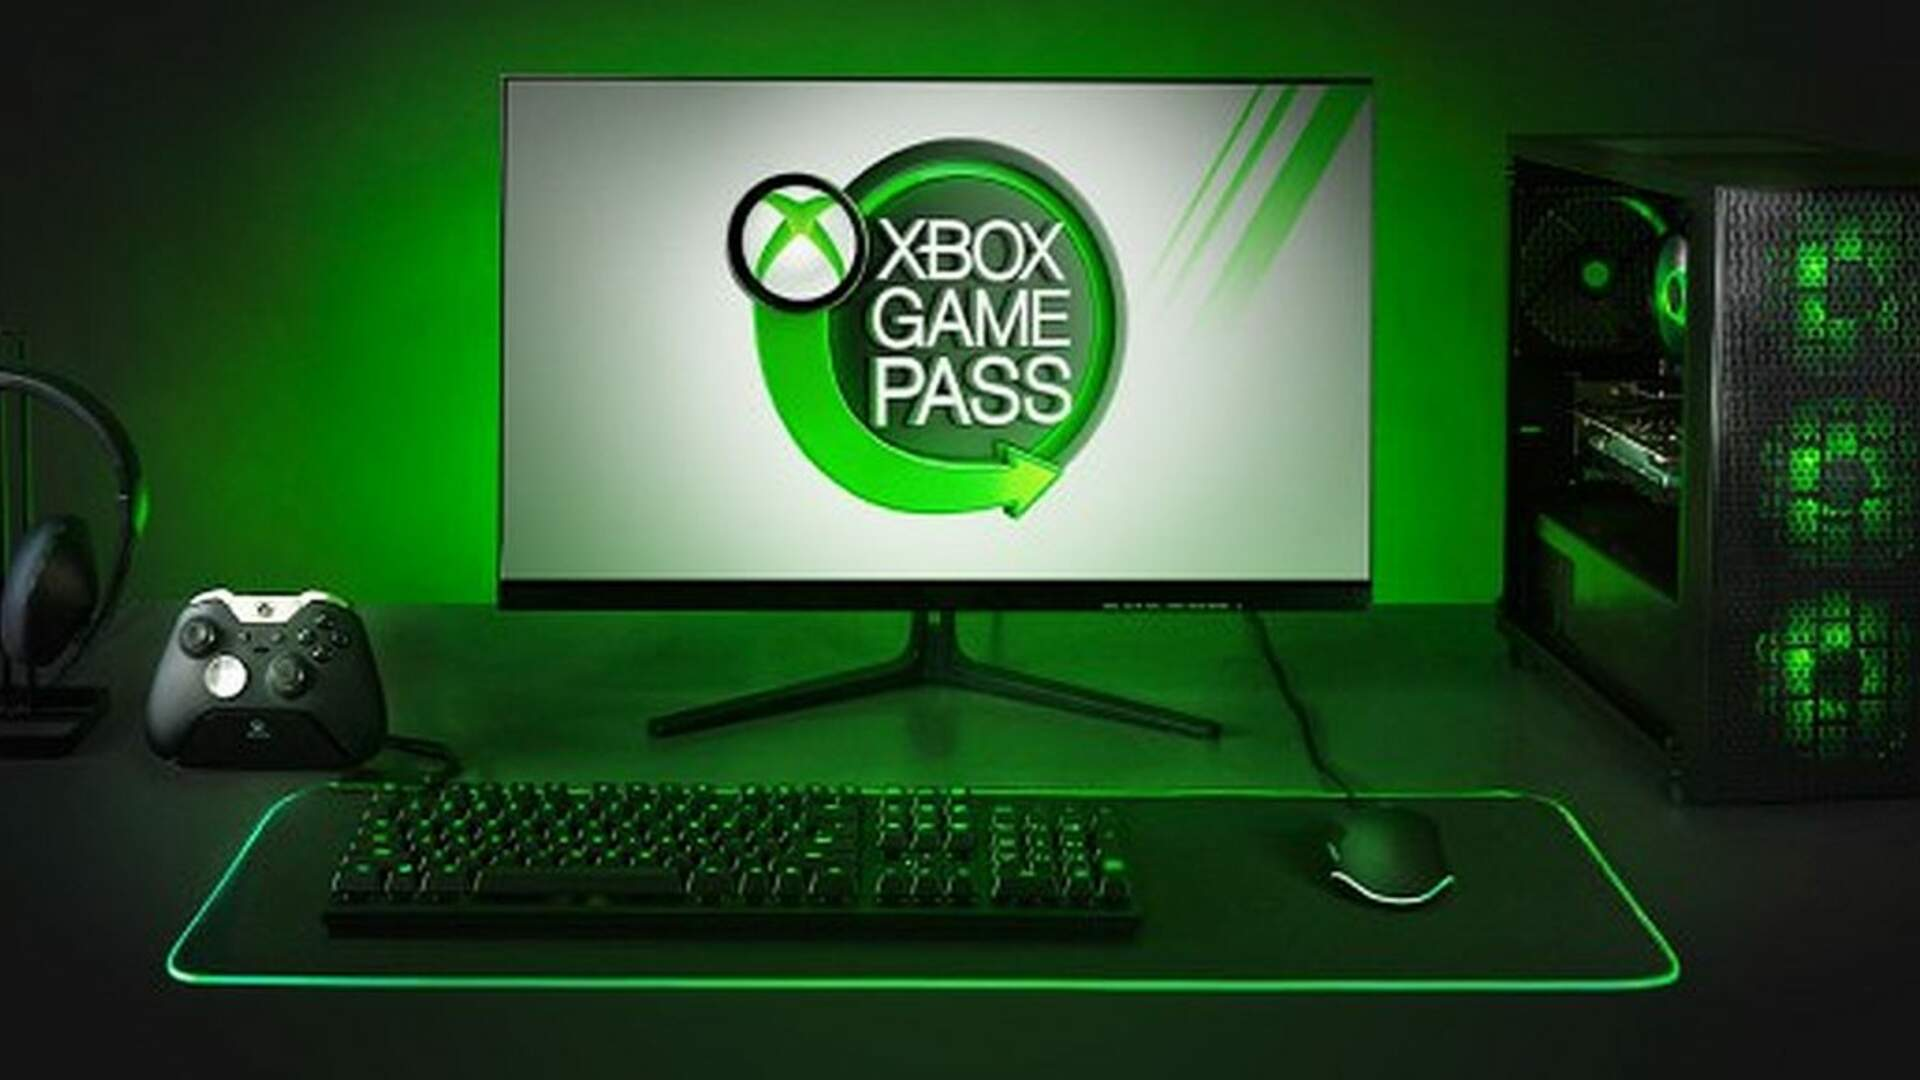 Xbox Game Pass is Coming to PC With Games From Bethesda, Devolver Digital, Paradox, and More